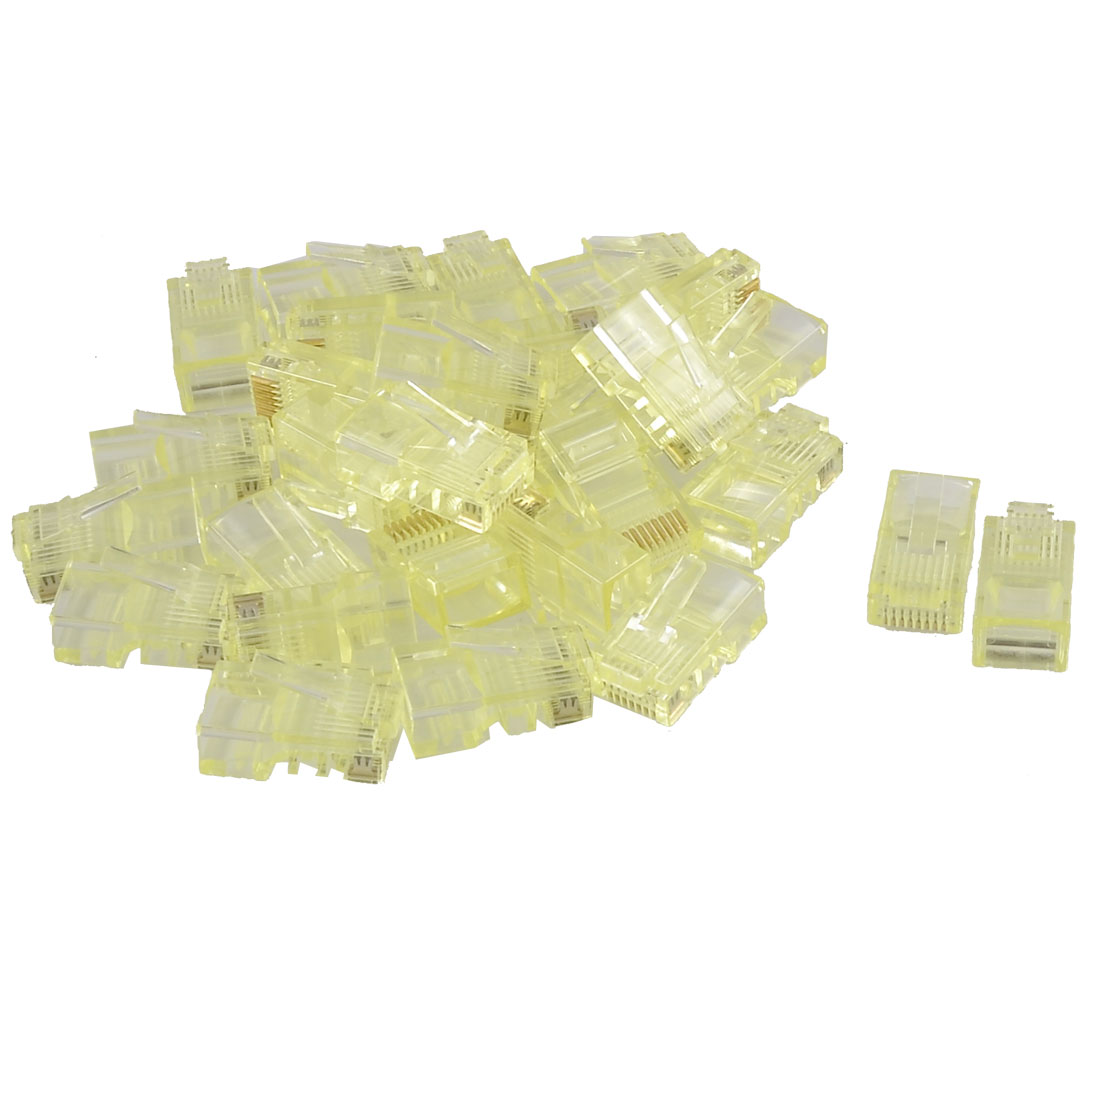 Light Yellow 8P8C Cat5 CatE Modular Network Cable Plug RJ45 Connector 30 Pcs